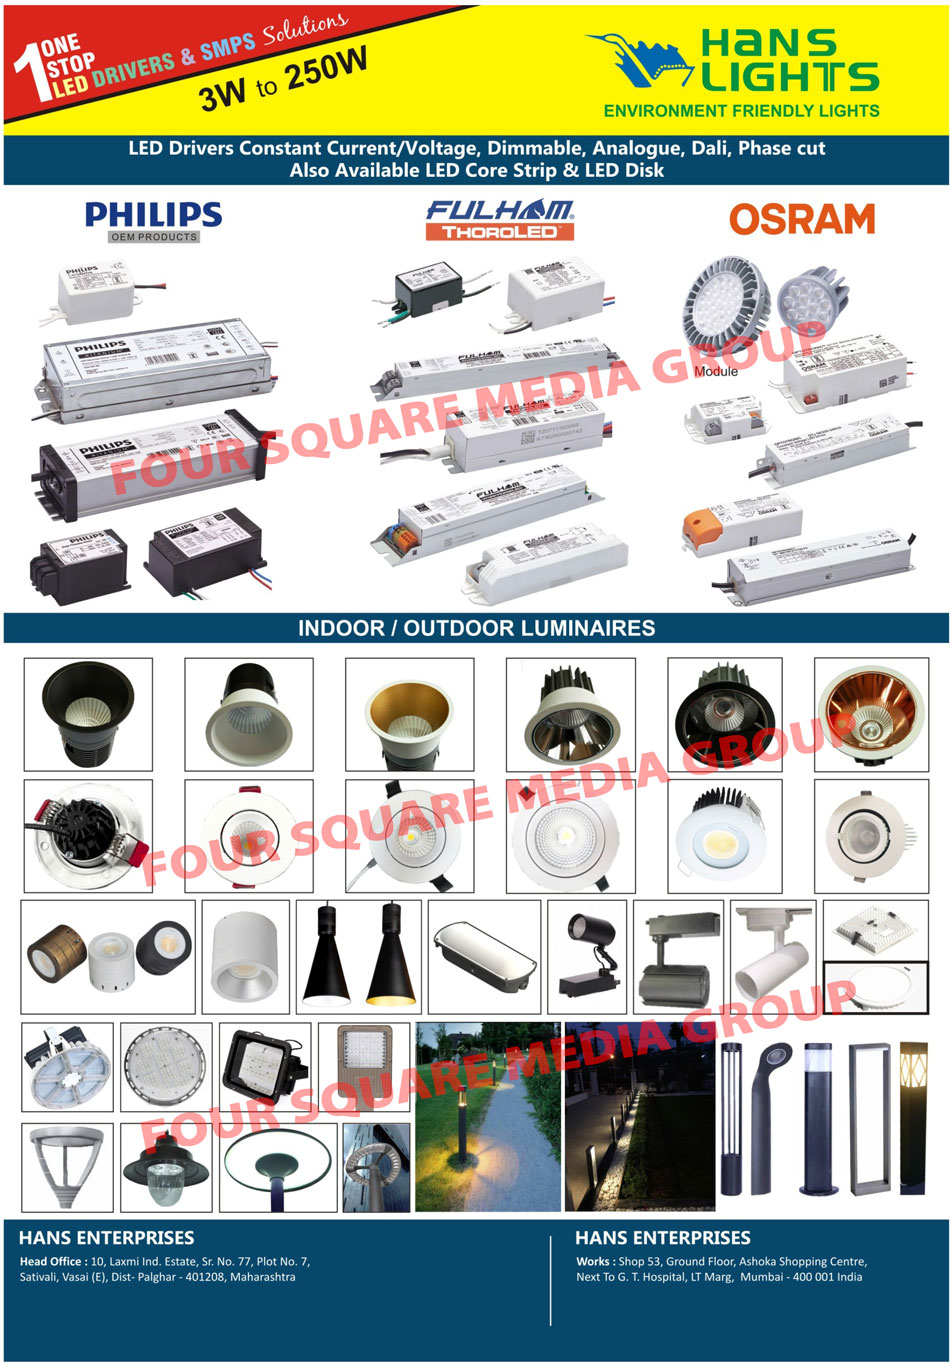 Led Disks, DLM, Distributed lock manager, Led Drivers, LED line Core, Led lights, Led Down Lights, Mid Bay Led Lights, LED High Bay Lights, Led Middle Diffuser Downlights, Led Top Diffuser Down Lights, Led Spot Lights, Led Down Lights, Led Pendant Lights, Moveable Led Down Lights, Led Track Lights, LED Surface Lights, Recessed Led Luminaries, Compact Led Downlights, DLM Down Lights, Led Surface DLM Lights, Bollard Lights, Post Top Luminaires, Down Lights, Electrical Products, Electrical Items, Moveable Downlights, Pollard Lights, Led Core Strips, Led Disk, Led Drivers, Constant Current Led Drivers, Constant Voltage Led Drivers, Dimmable Led Drivers, Dali Led Drivers, Phase Cut Led Drivers, Led Module, Indoor Luminaries, Outdoor Luminaries